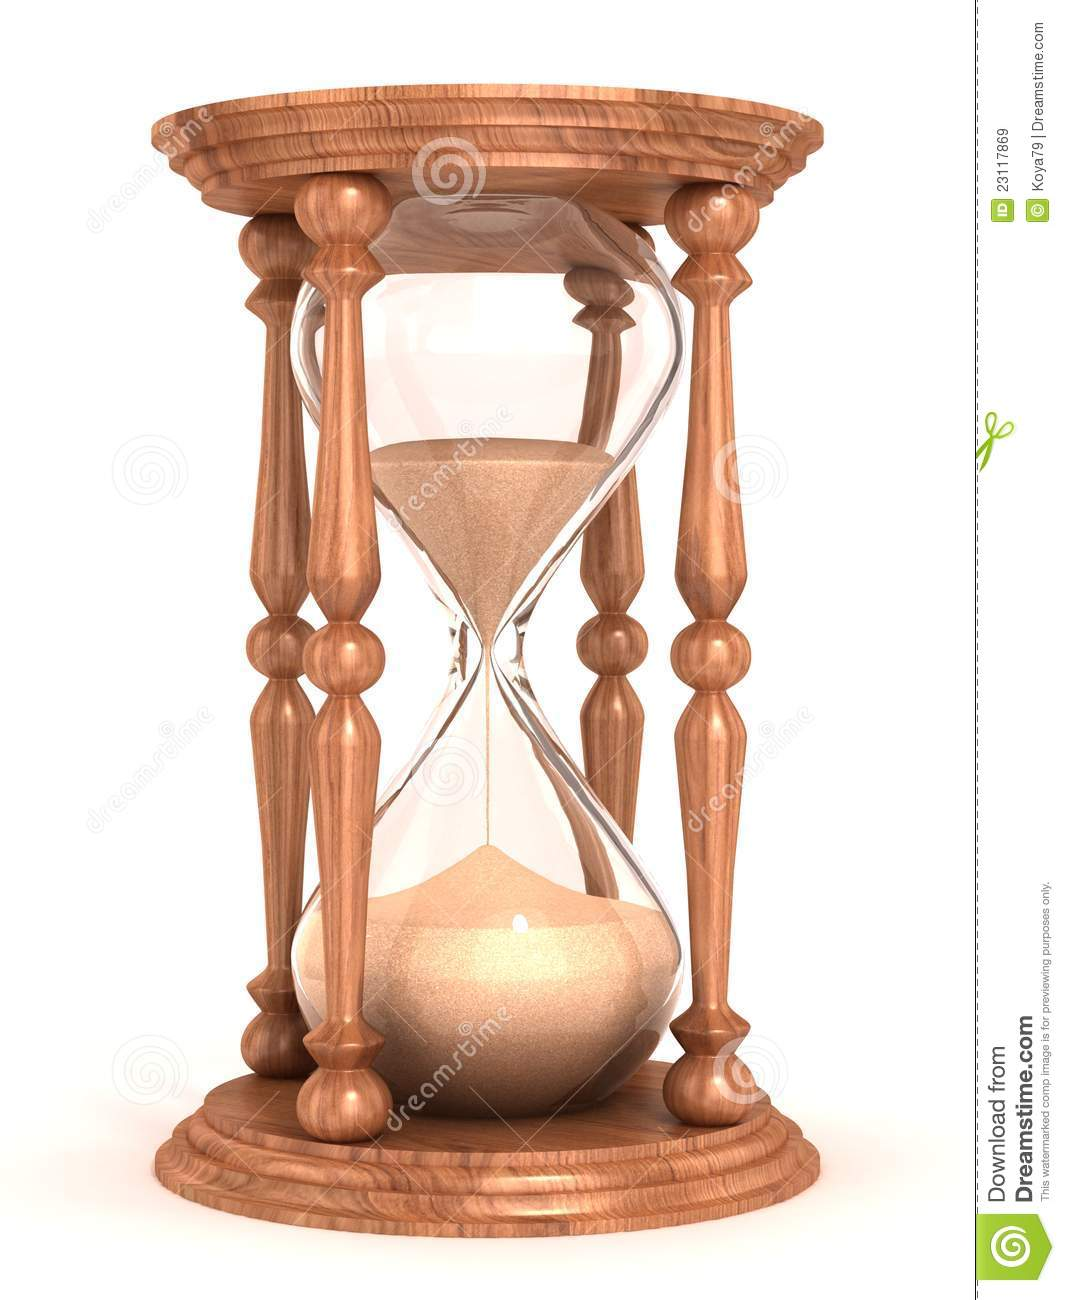 Hourglass clipart sand timer White Hourglass hourglass isolated clock